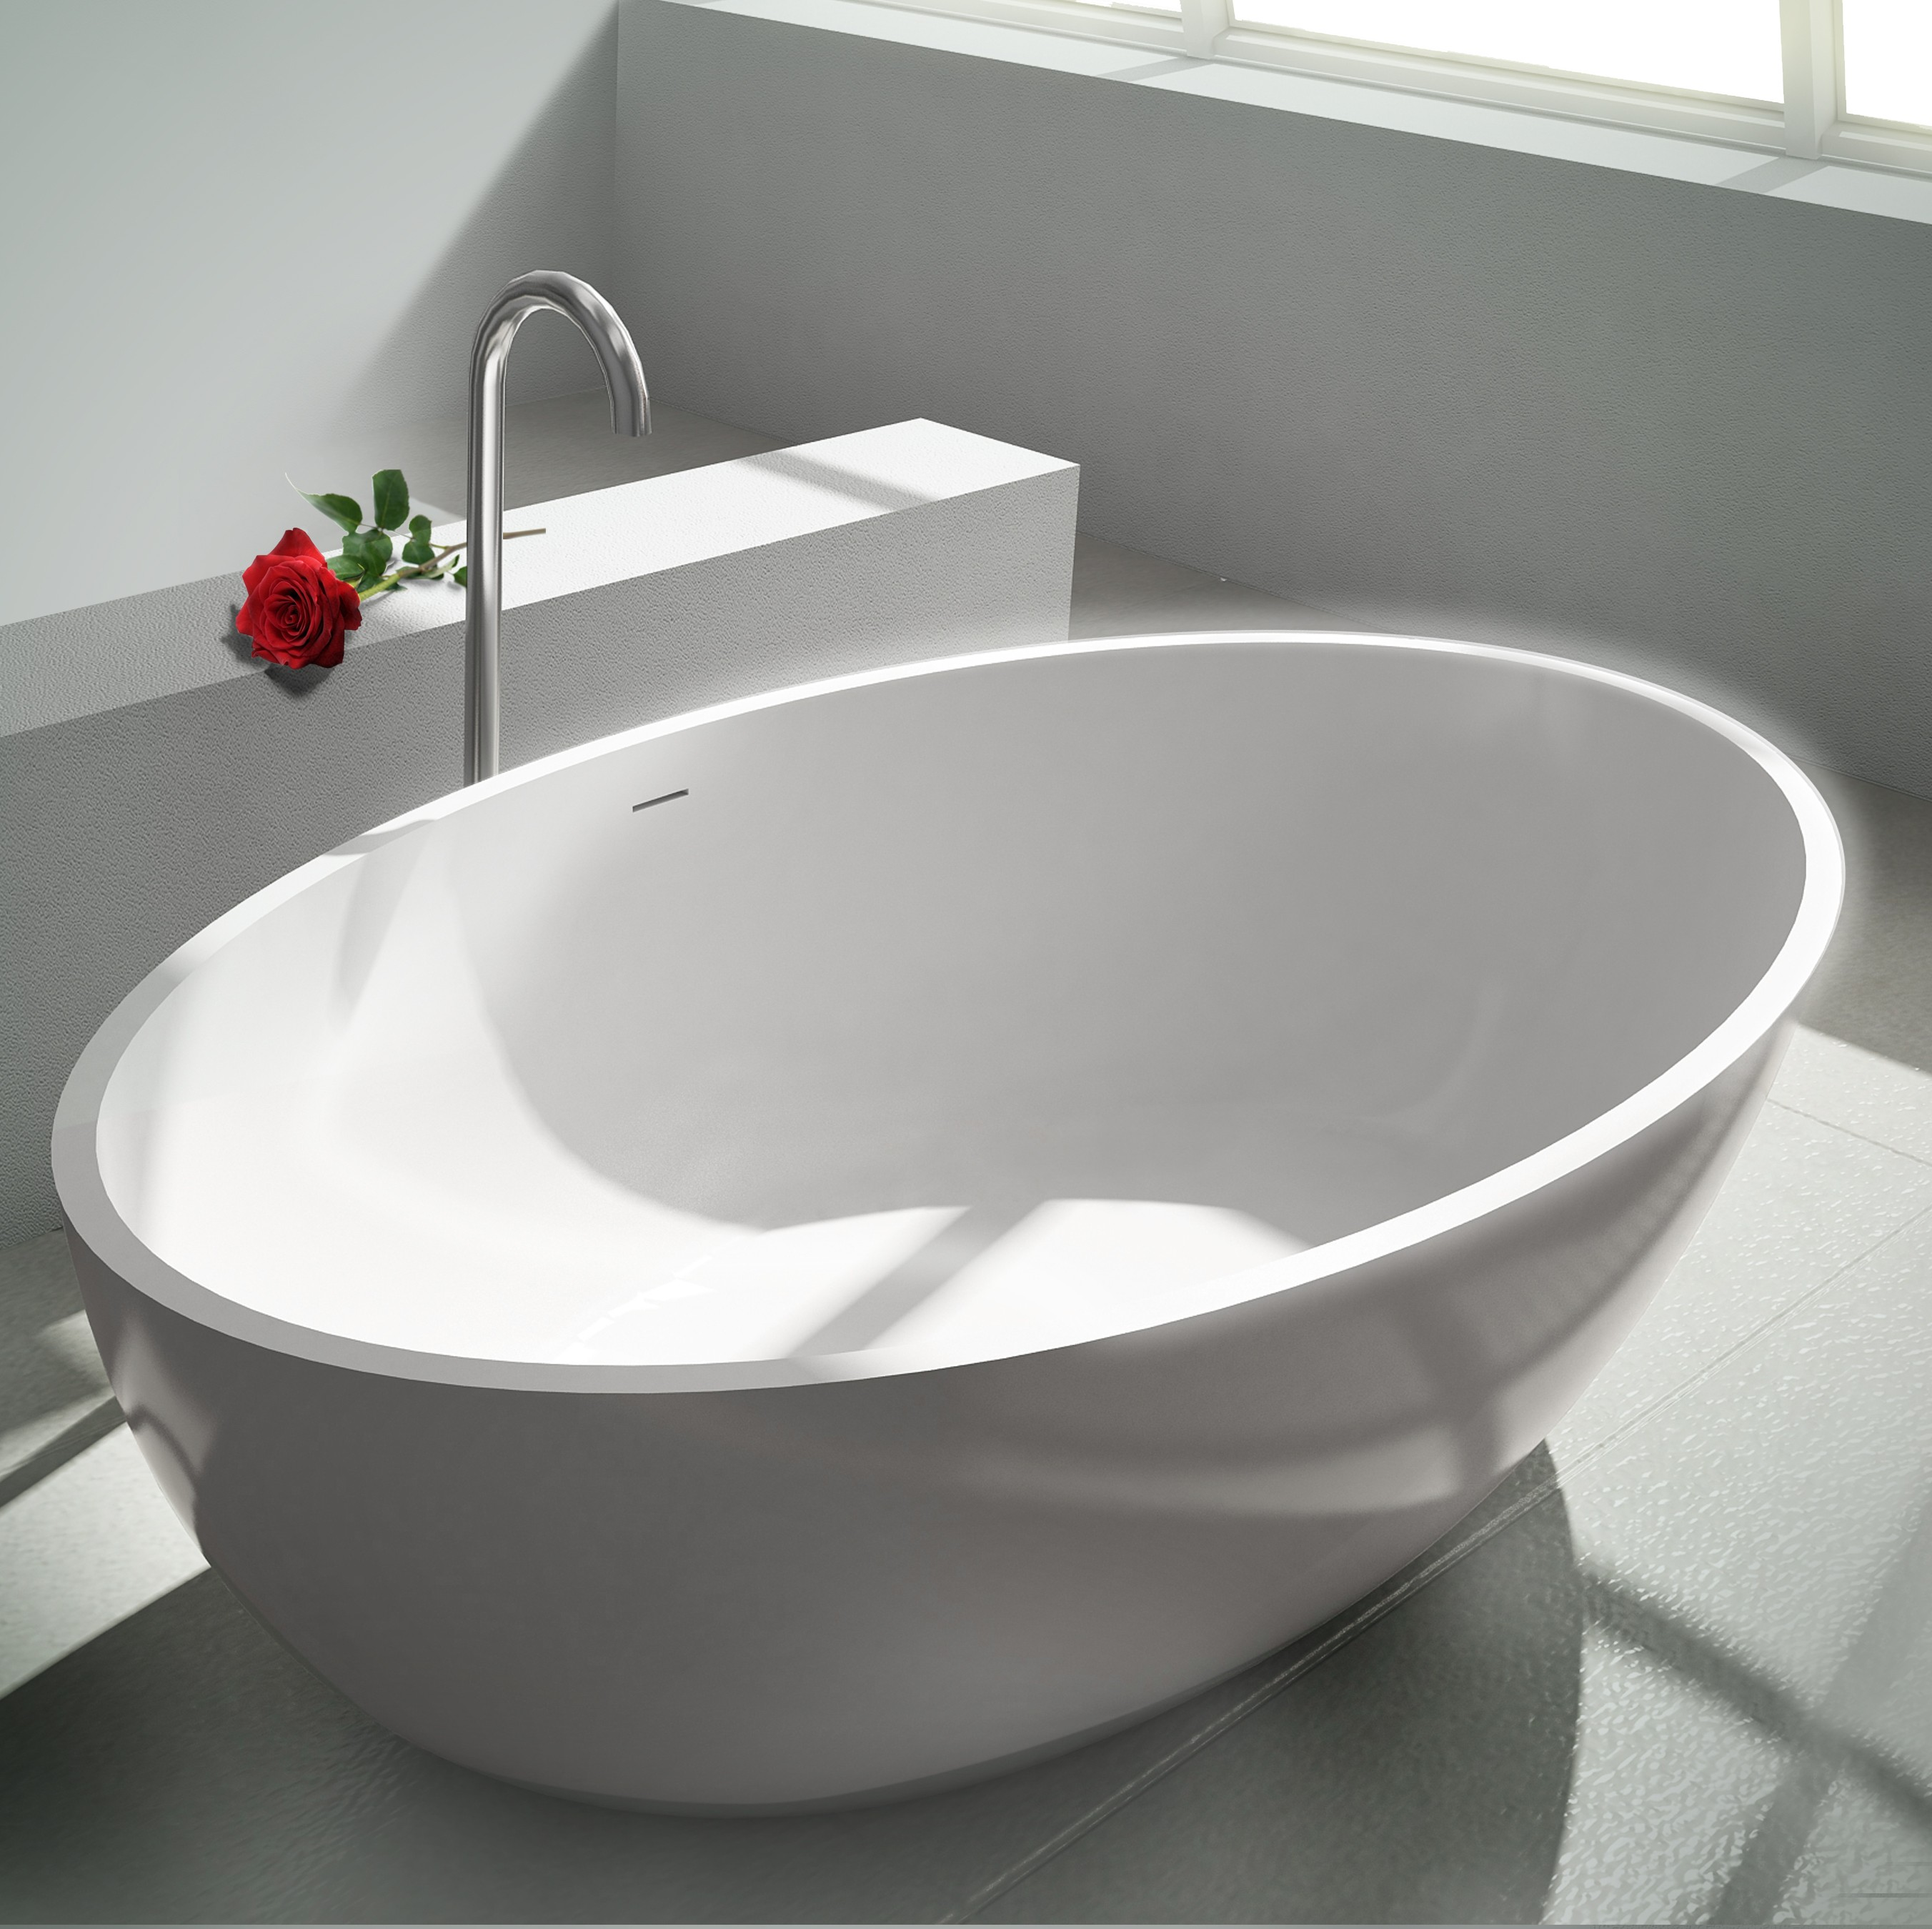 shipping iron free product cast overstock bathtub slipper today home garden clawfoot inch